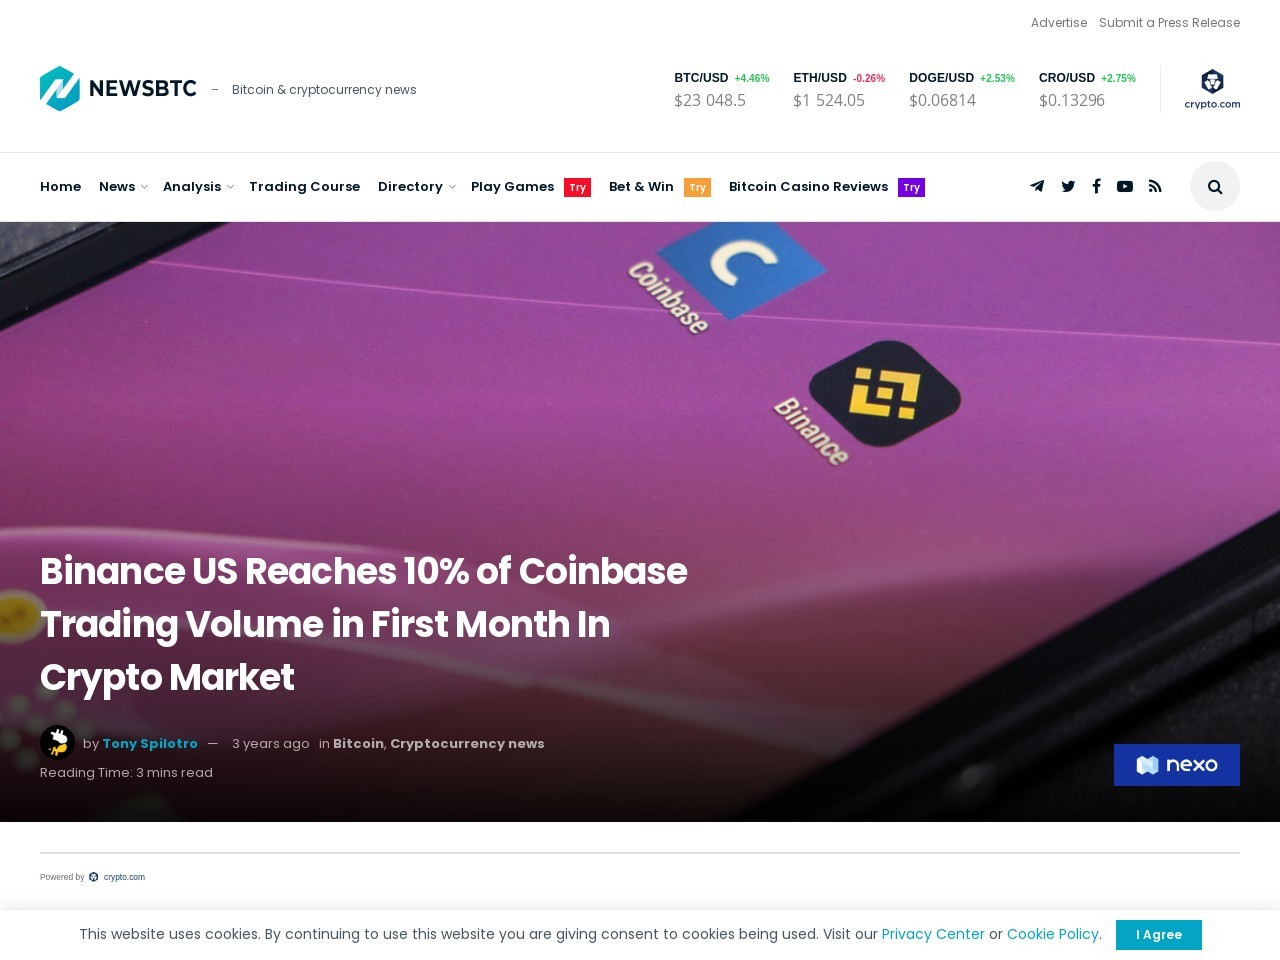 Binance US Reaches 10% of Coinbase Trading Volume in First Month In Crypto Market